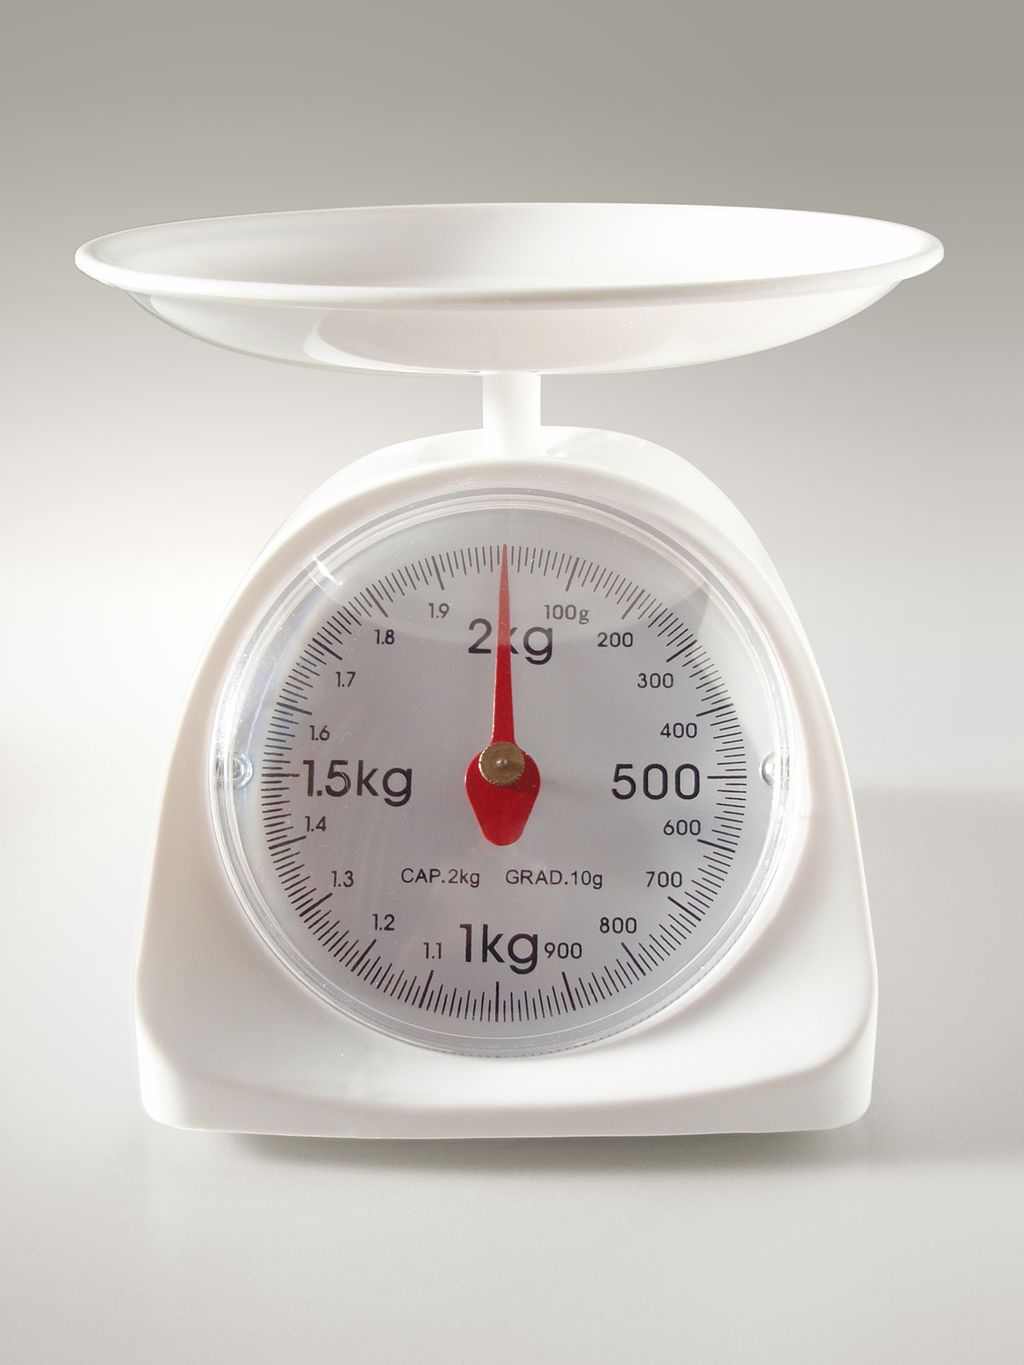 Measuring Mass Or Weight